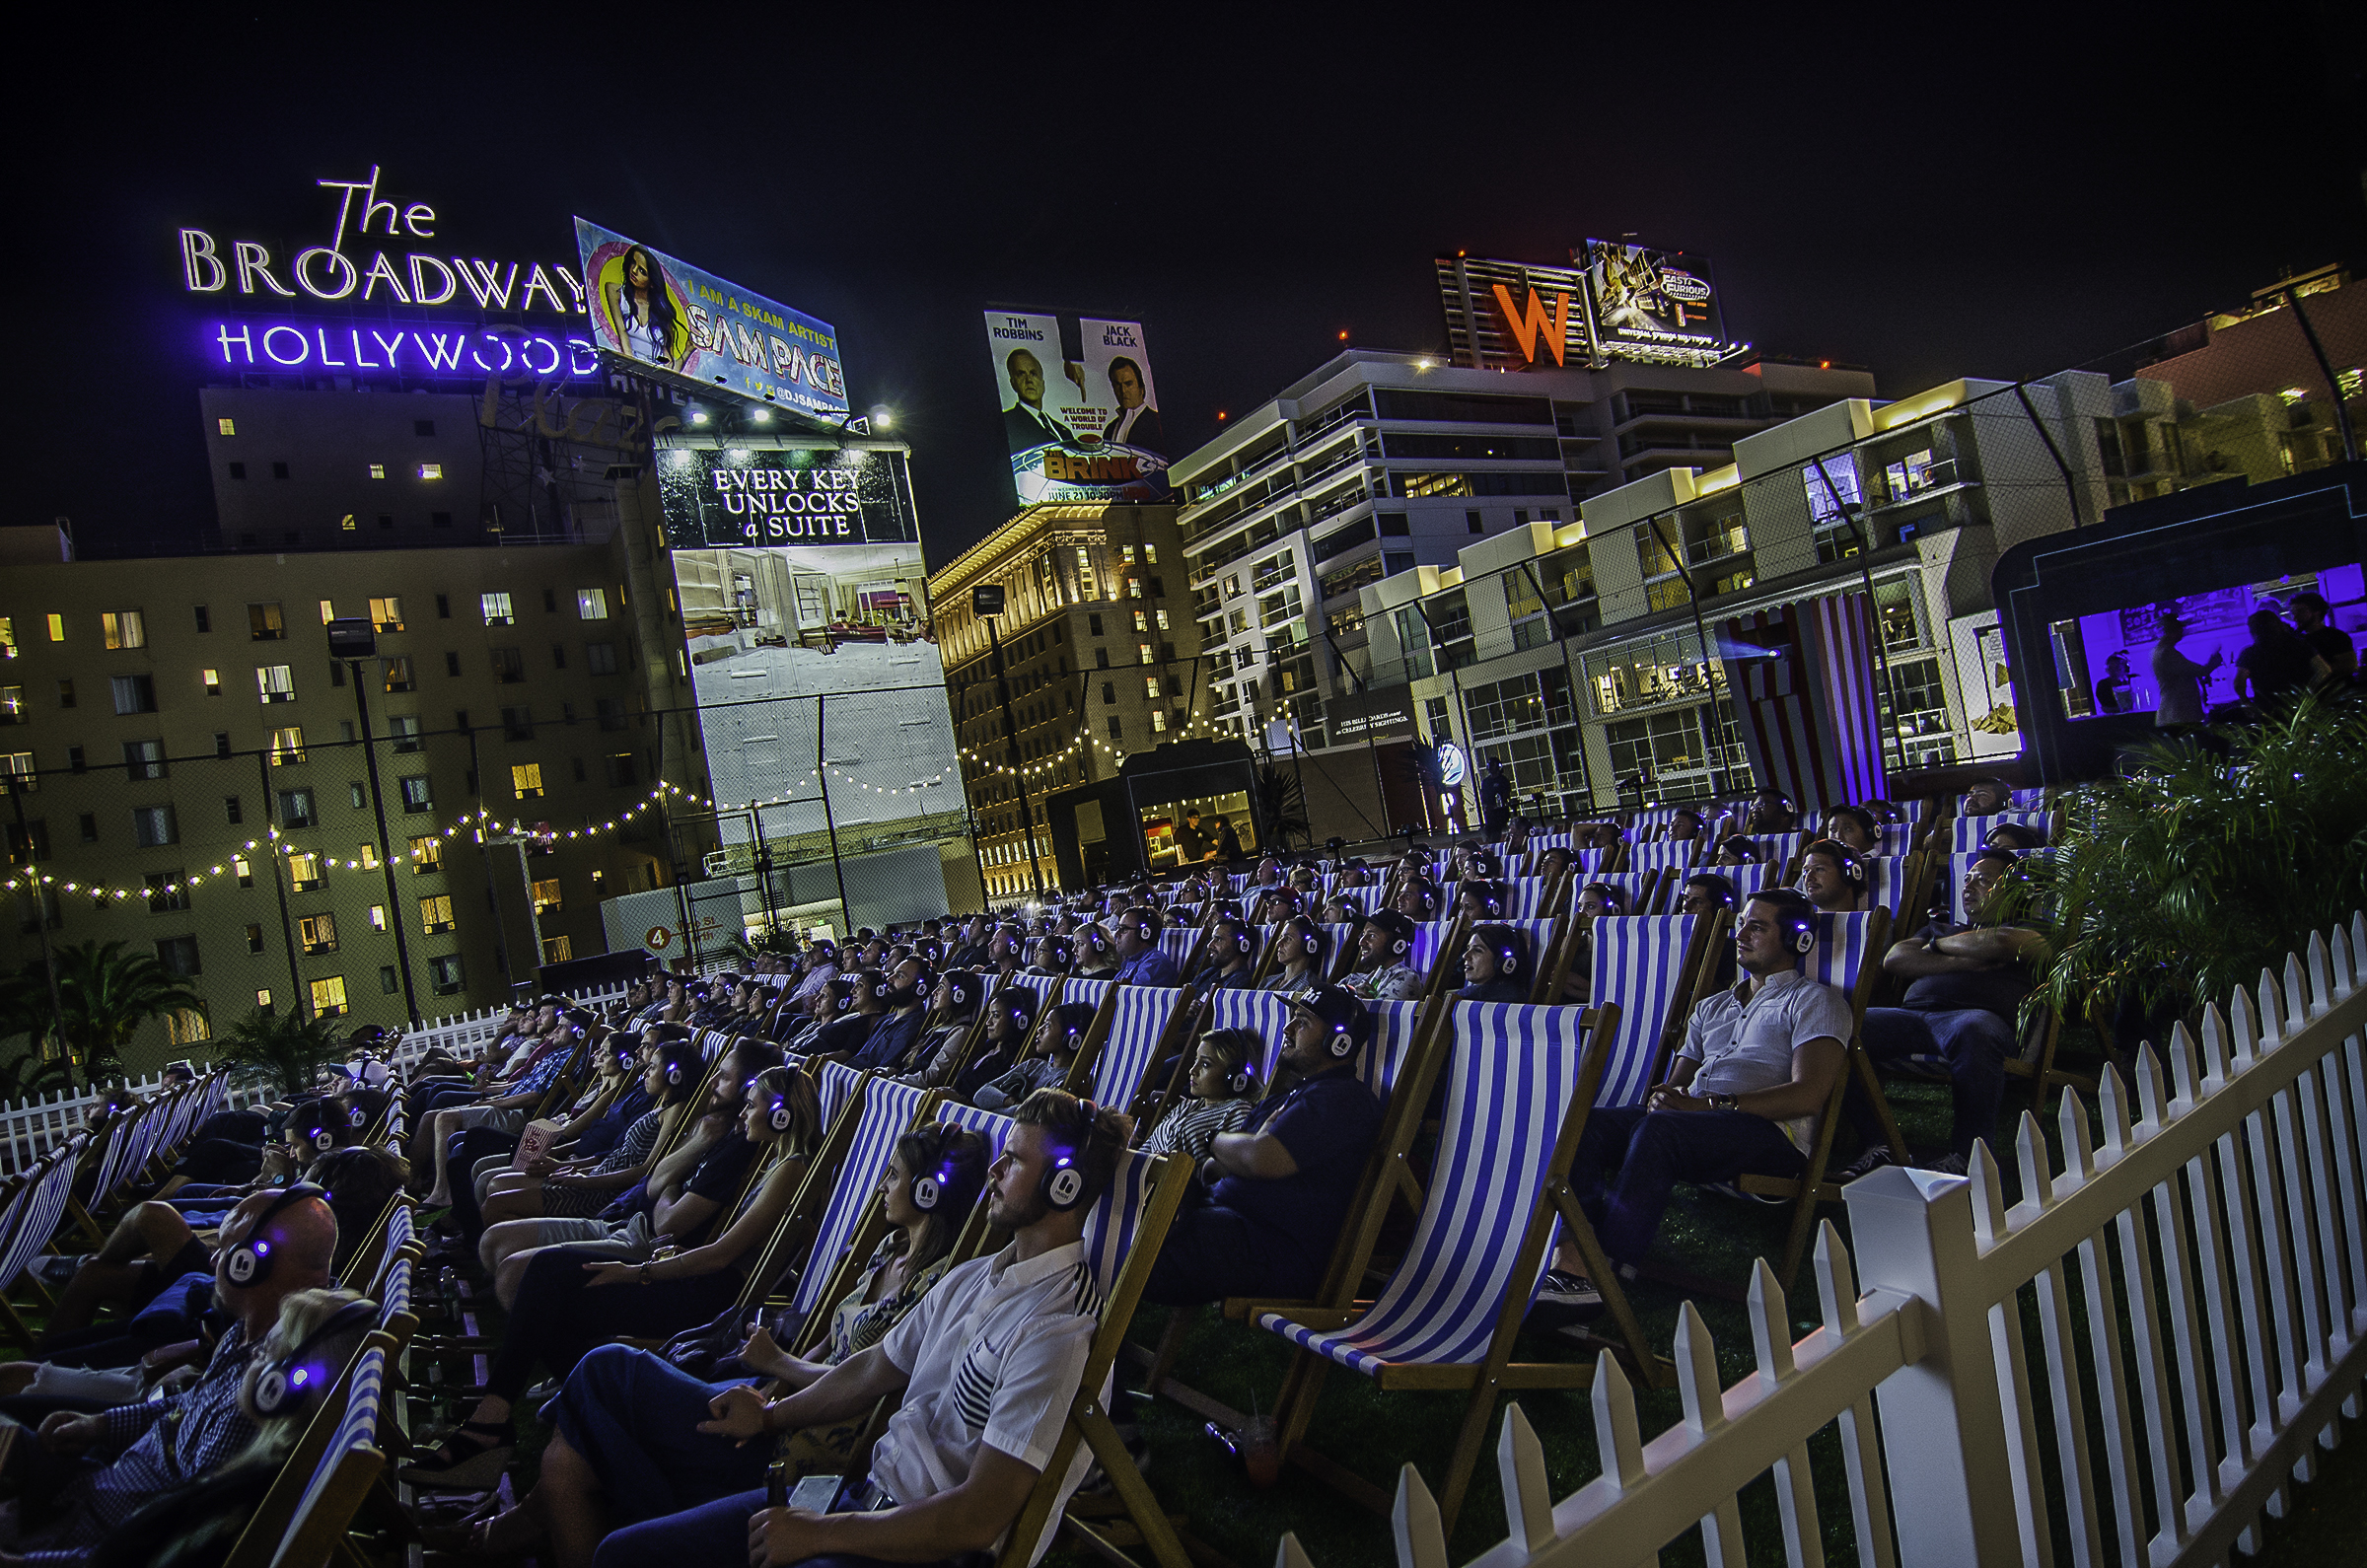 Watch a movie on a Hollywood rooftop